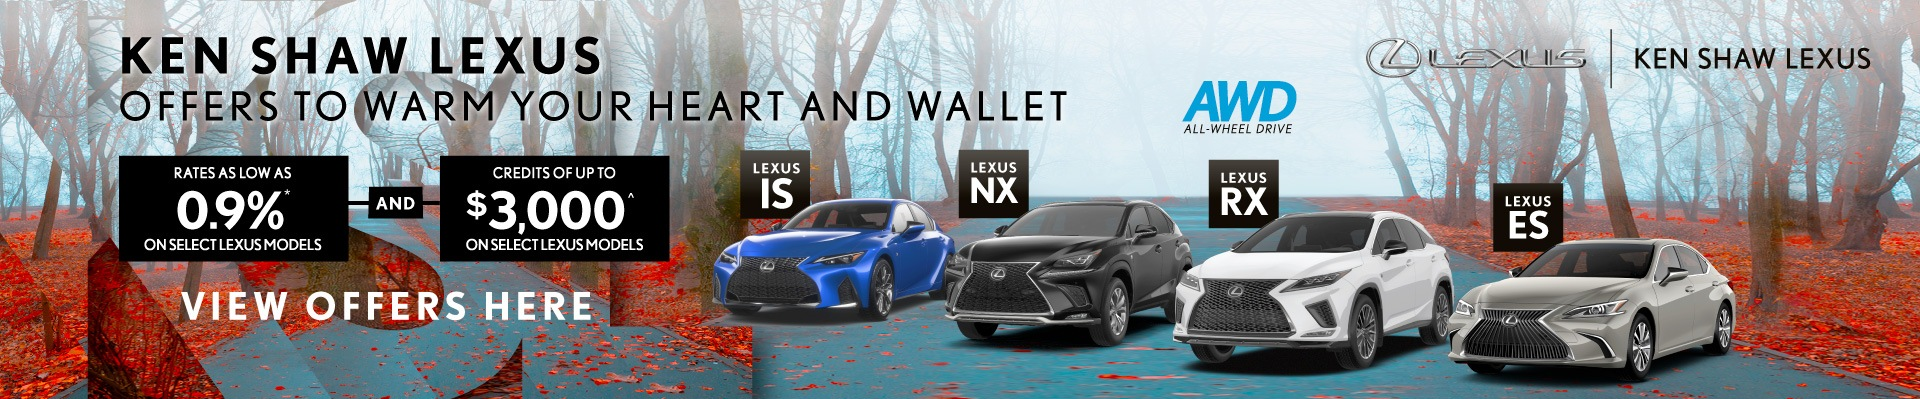 Ken Shaw Lexus Toronto Offers new